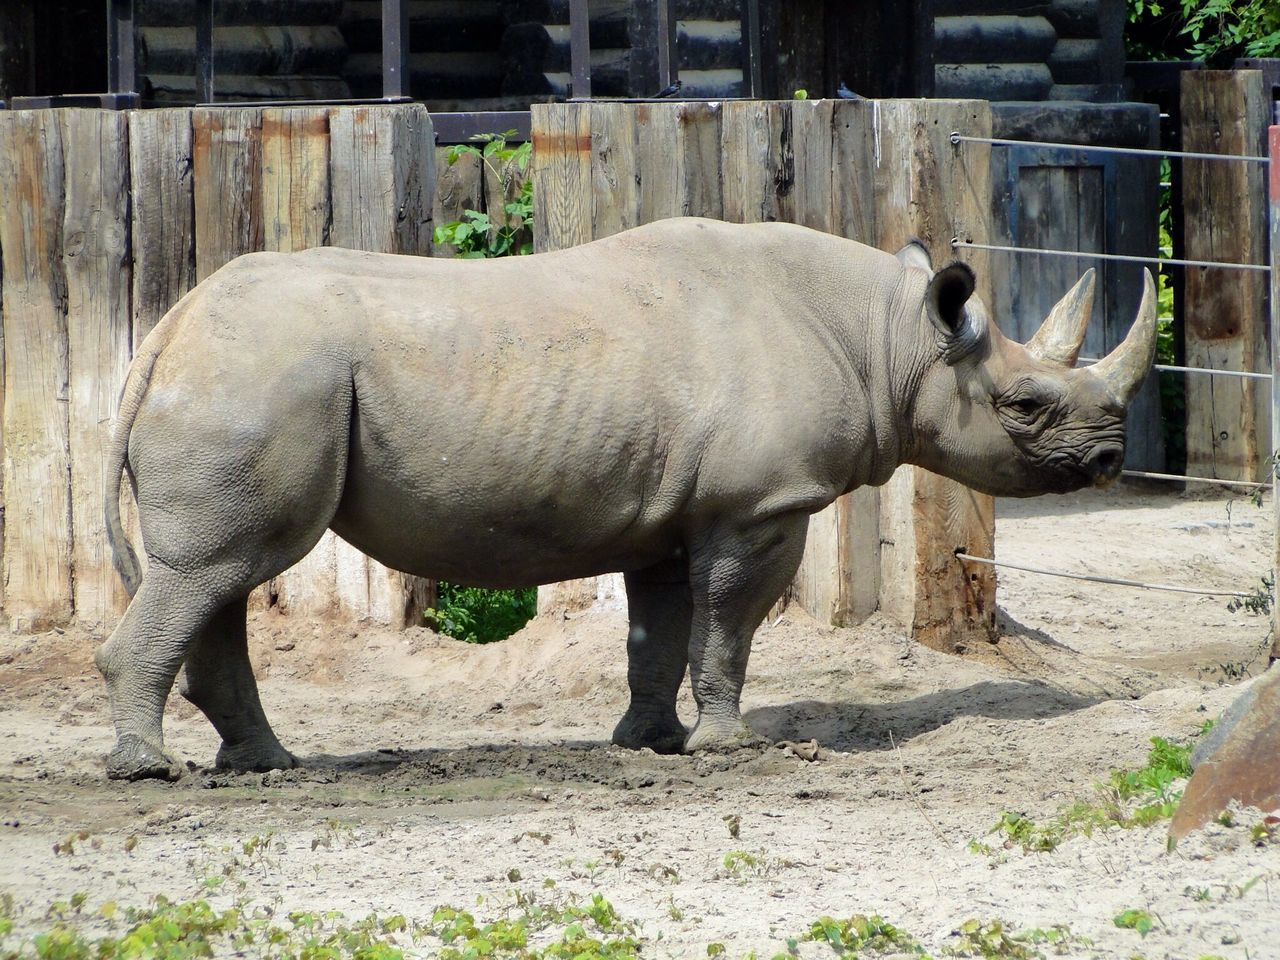 Side view of rhinoceros standing against wooden fence